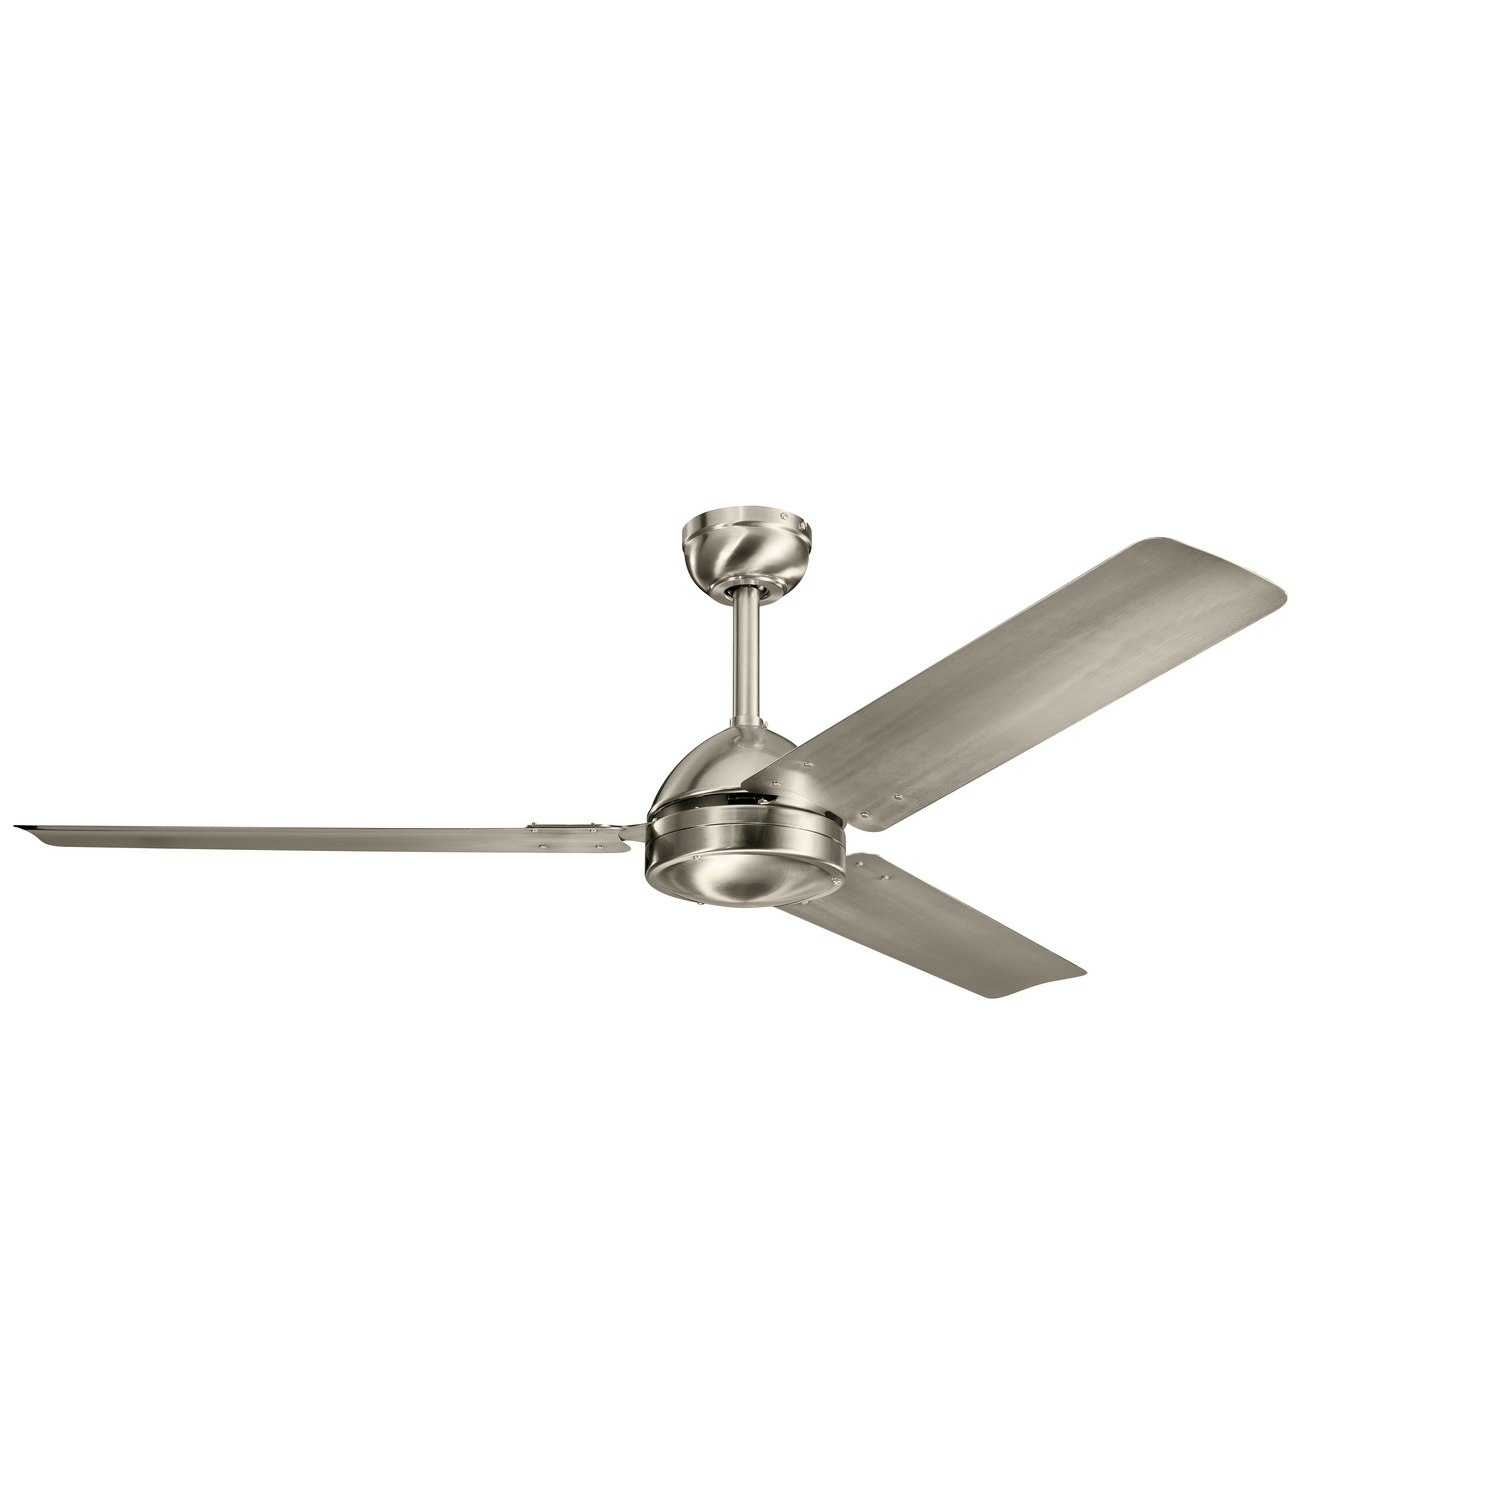 56 inchCeiling Fan from the Todo collection by Kichler 330025BSS